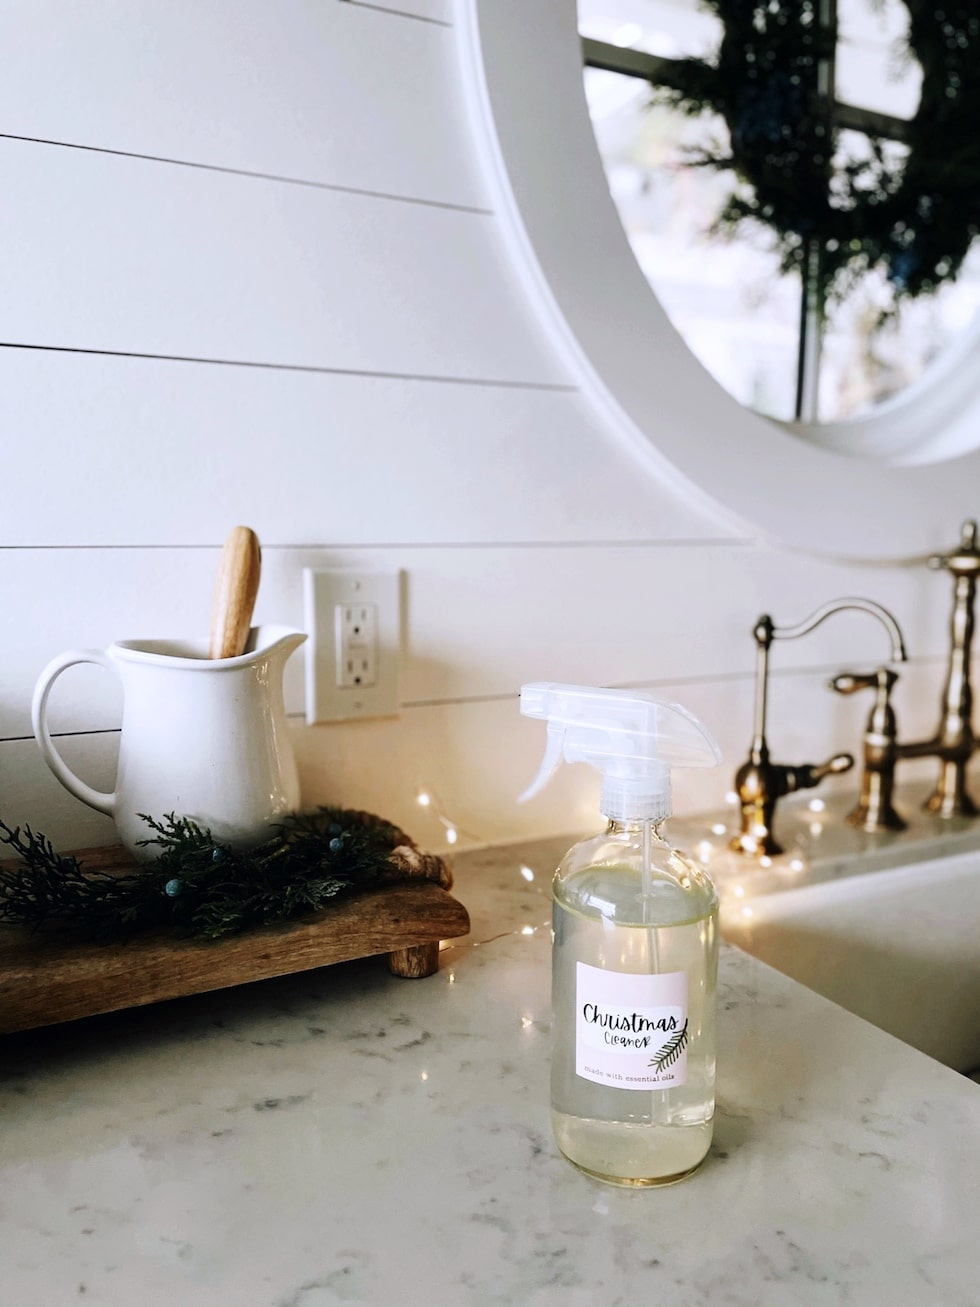 A scented holiday home + Black Friday offer